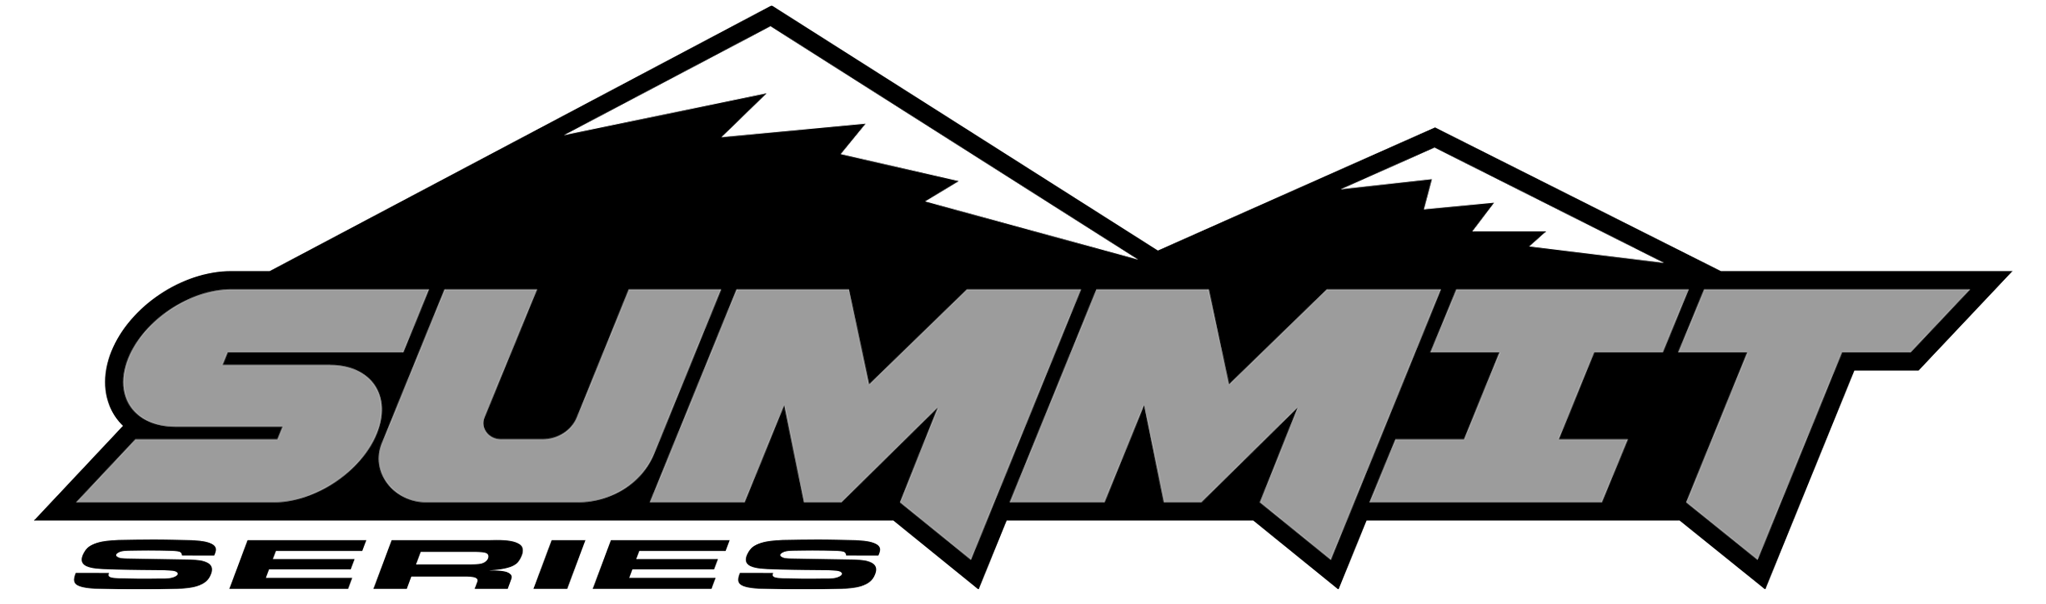 summit-series-logo.png